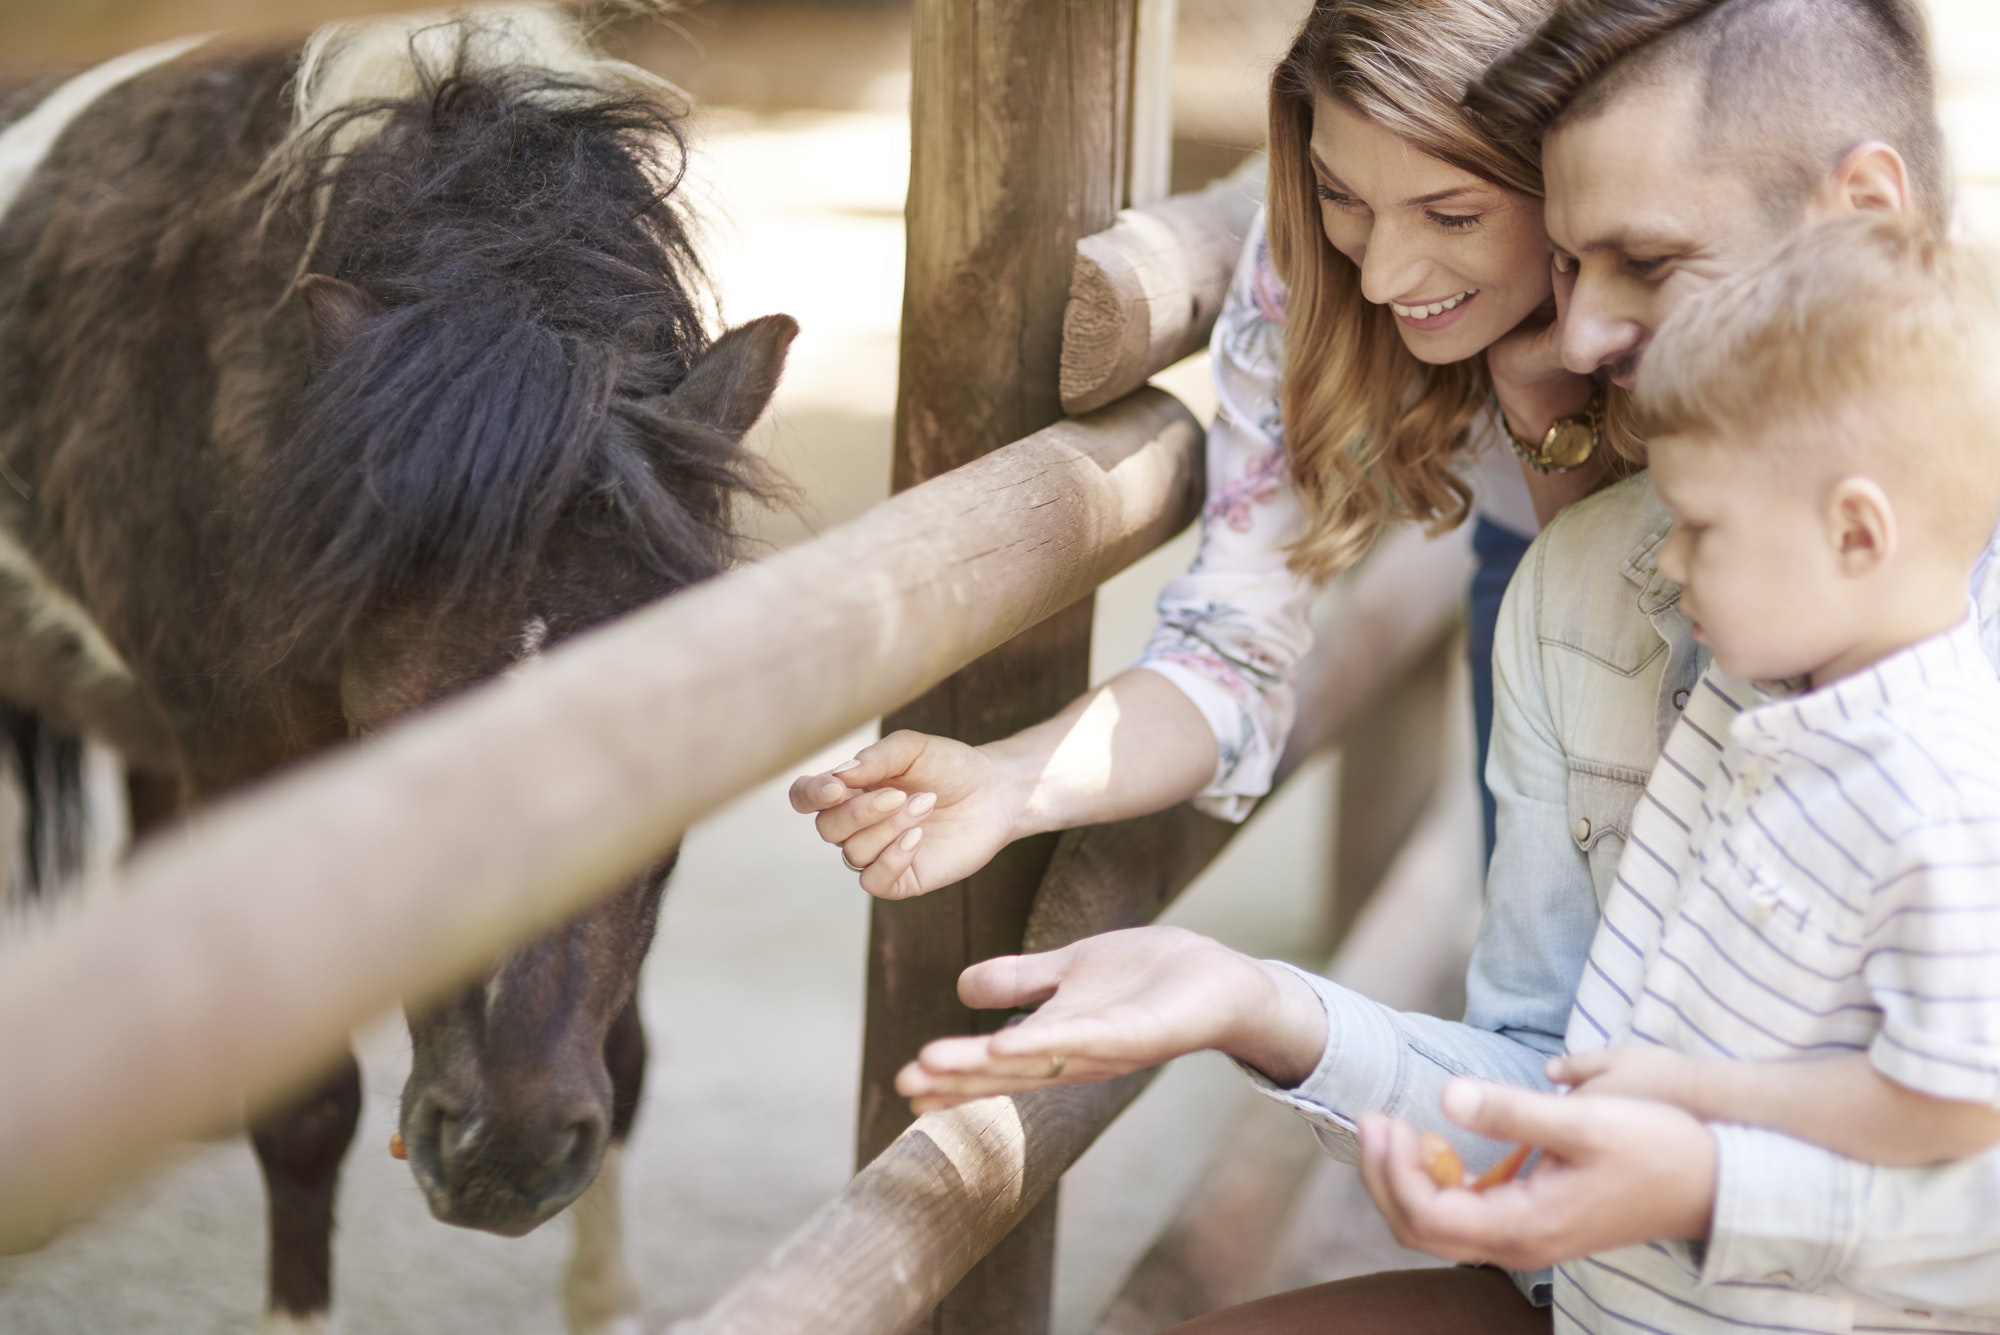 Feeding little horse at the zoo